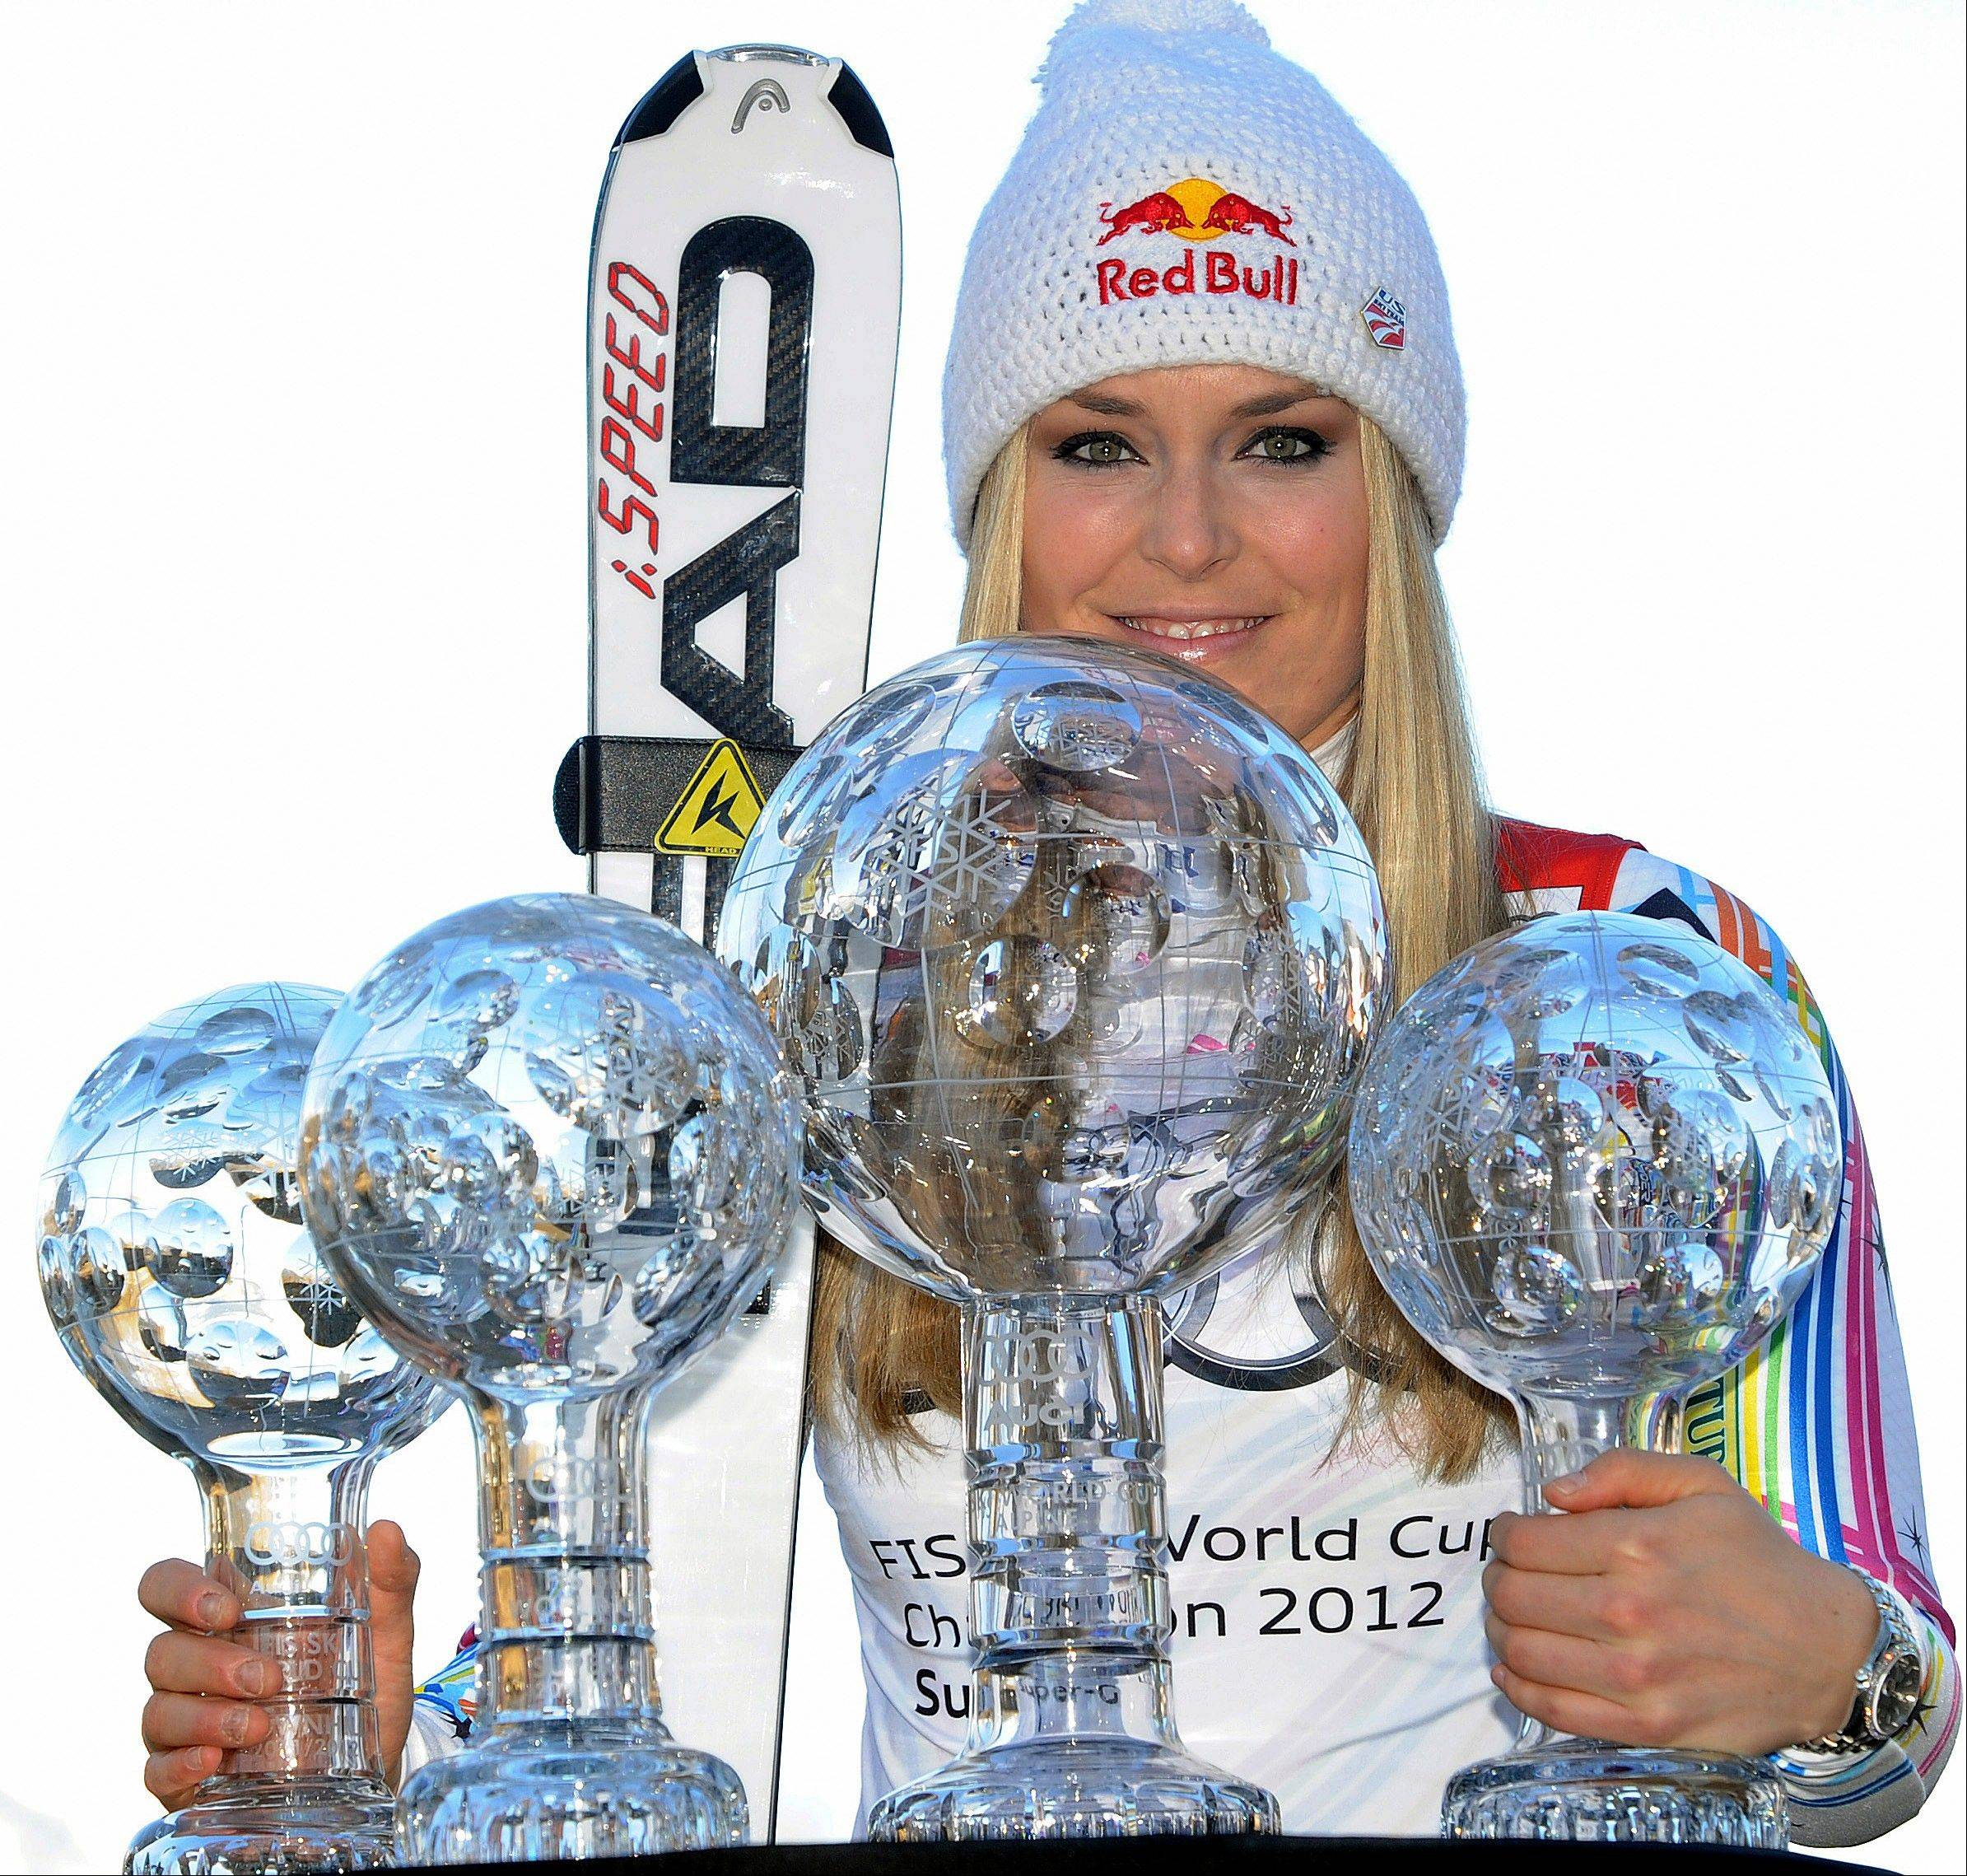 "This March 18, 2012 file photo shows Lindsey Vonn, of the United States, posing with her alpine ski, women's World Cup trophies for the super-G, super-combined, downhill and overall titles, in Schladming, Austria. The United States ski team says it hasn't had any ""formal discussion"" yet about the possibility of Lindsey Vonn entering a men's World Cup downhill next month. FIS secretary general Sarah Lewis tells The Associated Press the governing body can't make a decision on the matter until the team submits a formal request."